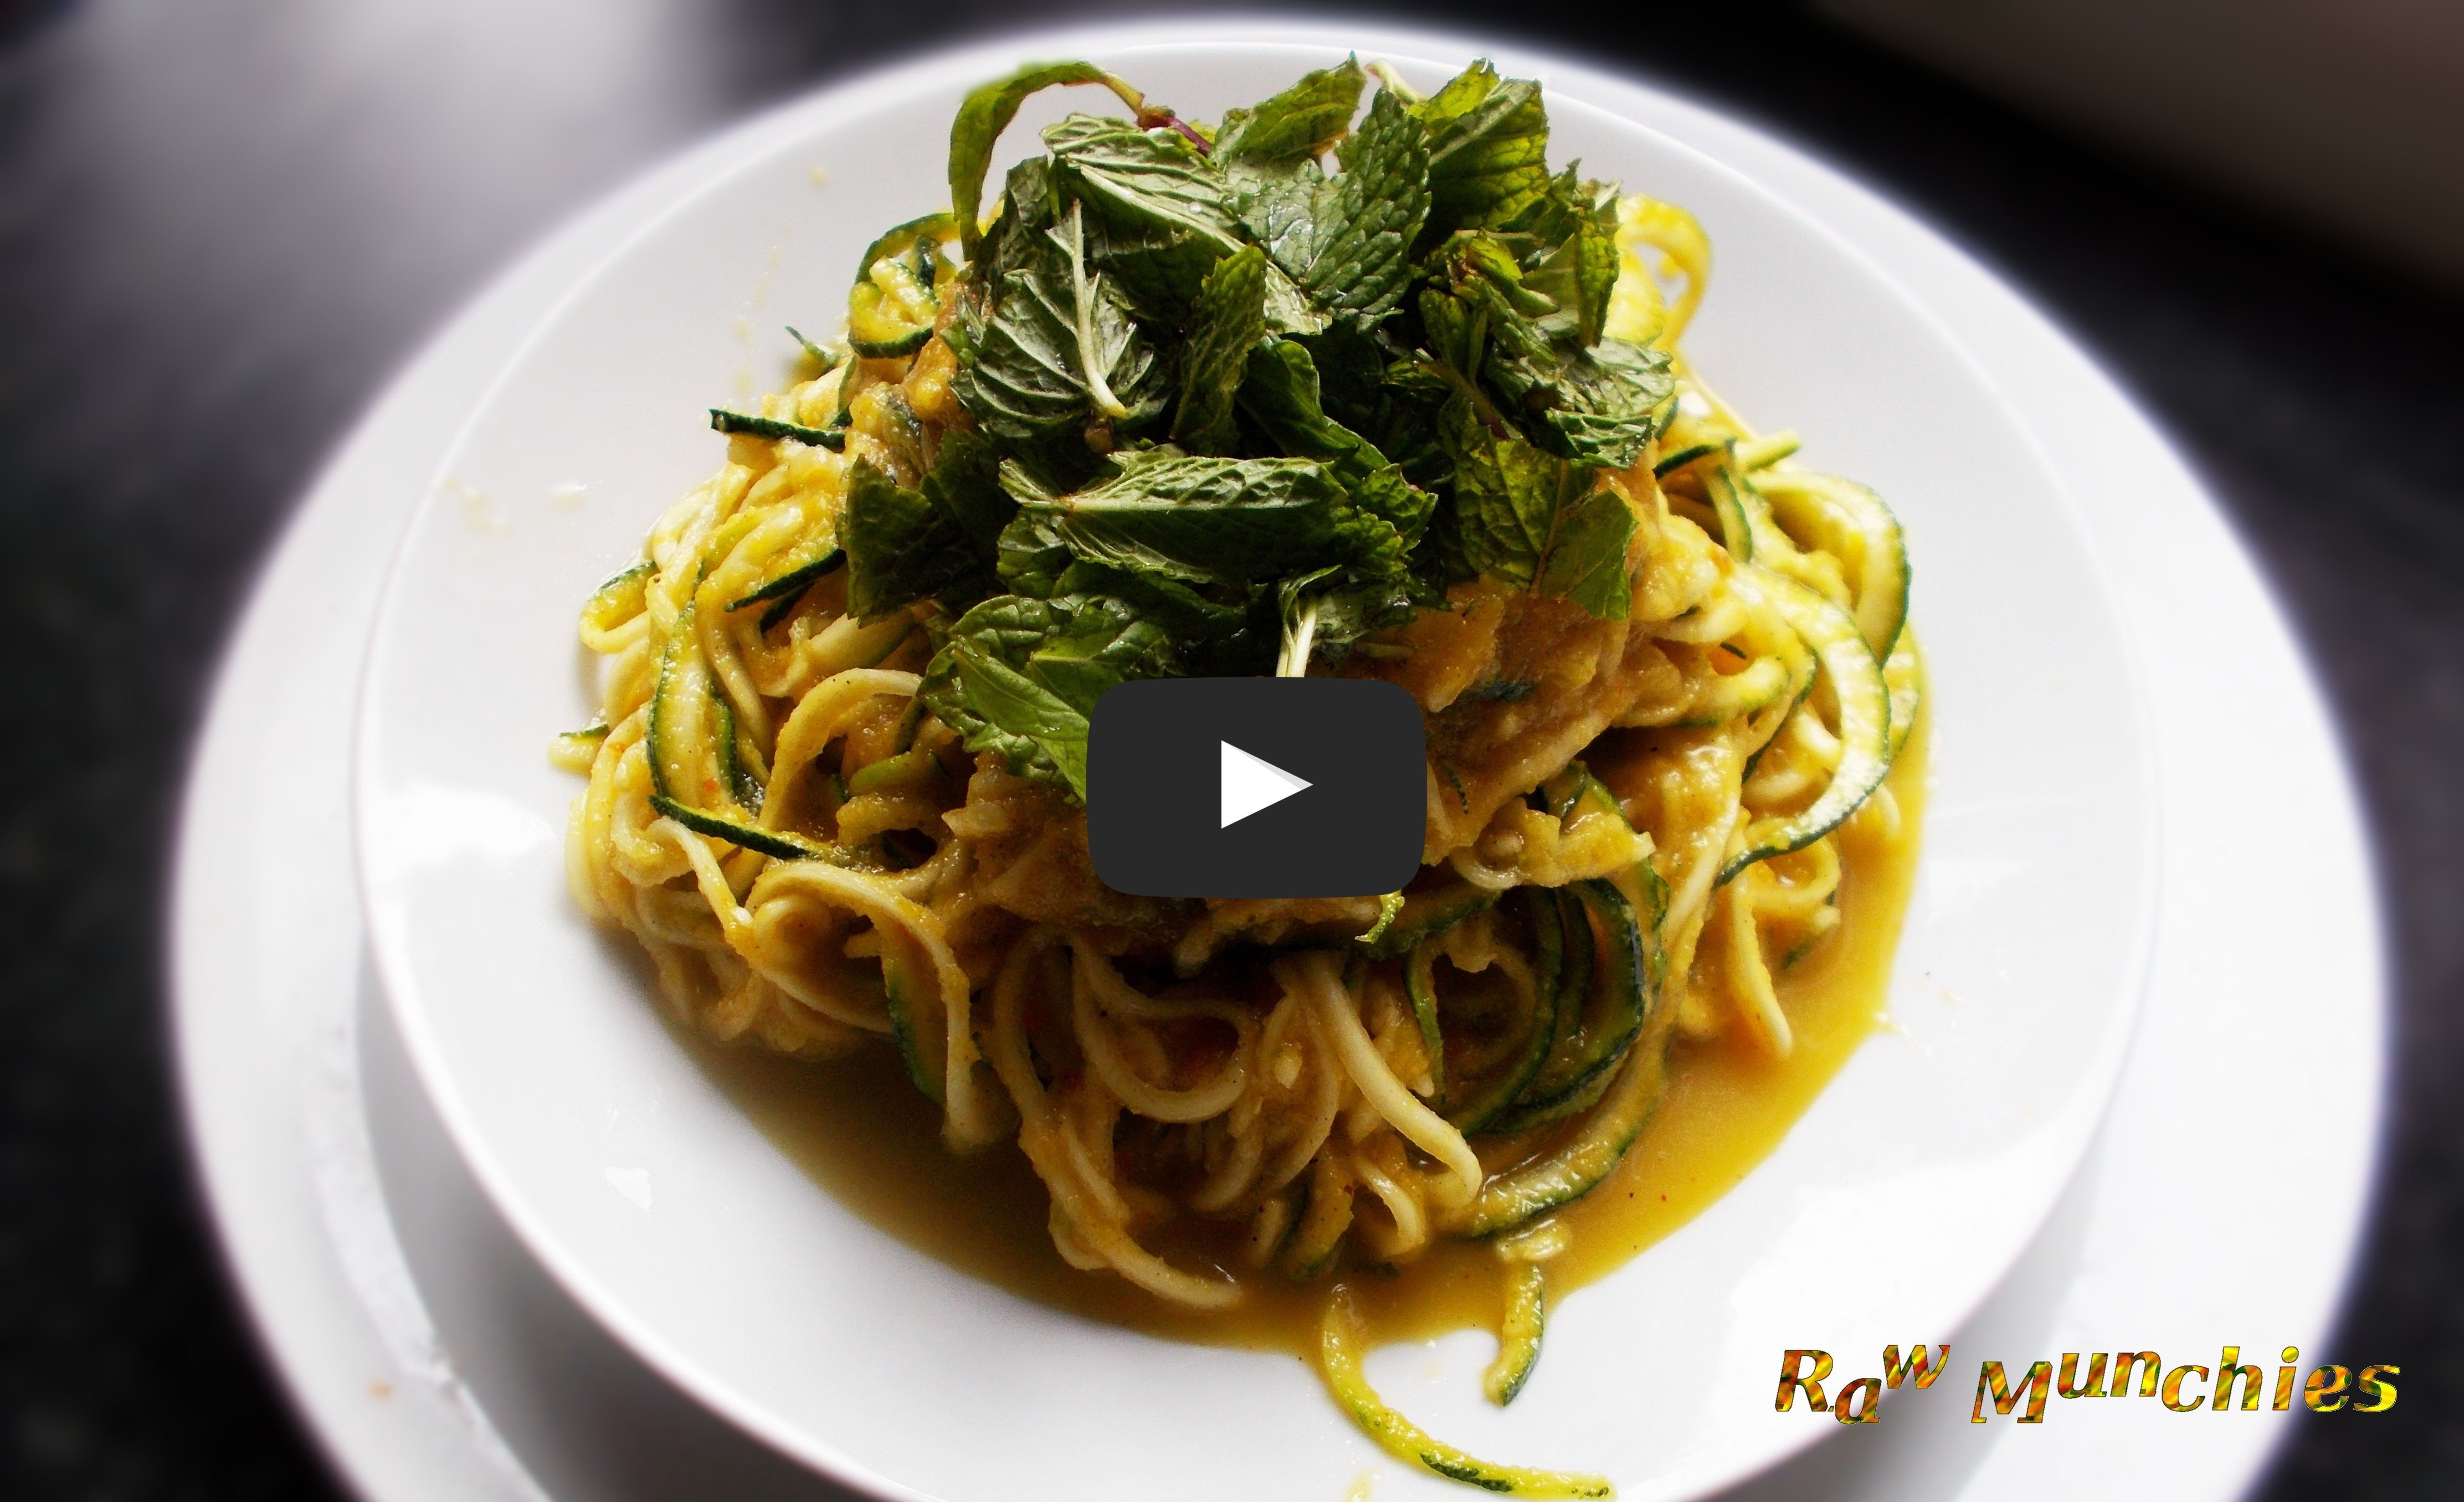 Raw Vegan Indian Curried Noodles | Rawmunchies.org | Raw Vegan Recipes Video: https://www.youtube.com/watch?v=9ets2wfi5qQ More here: http://ift.tt/2ugzNS5 . . . . .#Raw #Vegan #RECIPE #Youtube #Video #Rawmunchies #rawvegan #glutenfree #youtubevideo #youtuberecipe #youtuber #rawvegannoodles #indiannoodles #rawveganindianfood #zucchinninoodles #pasta